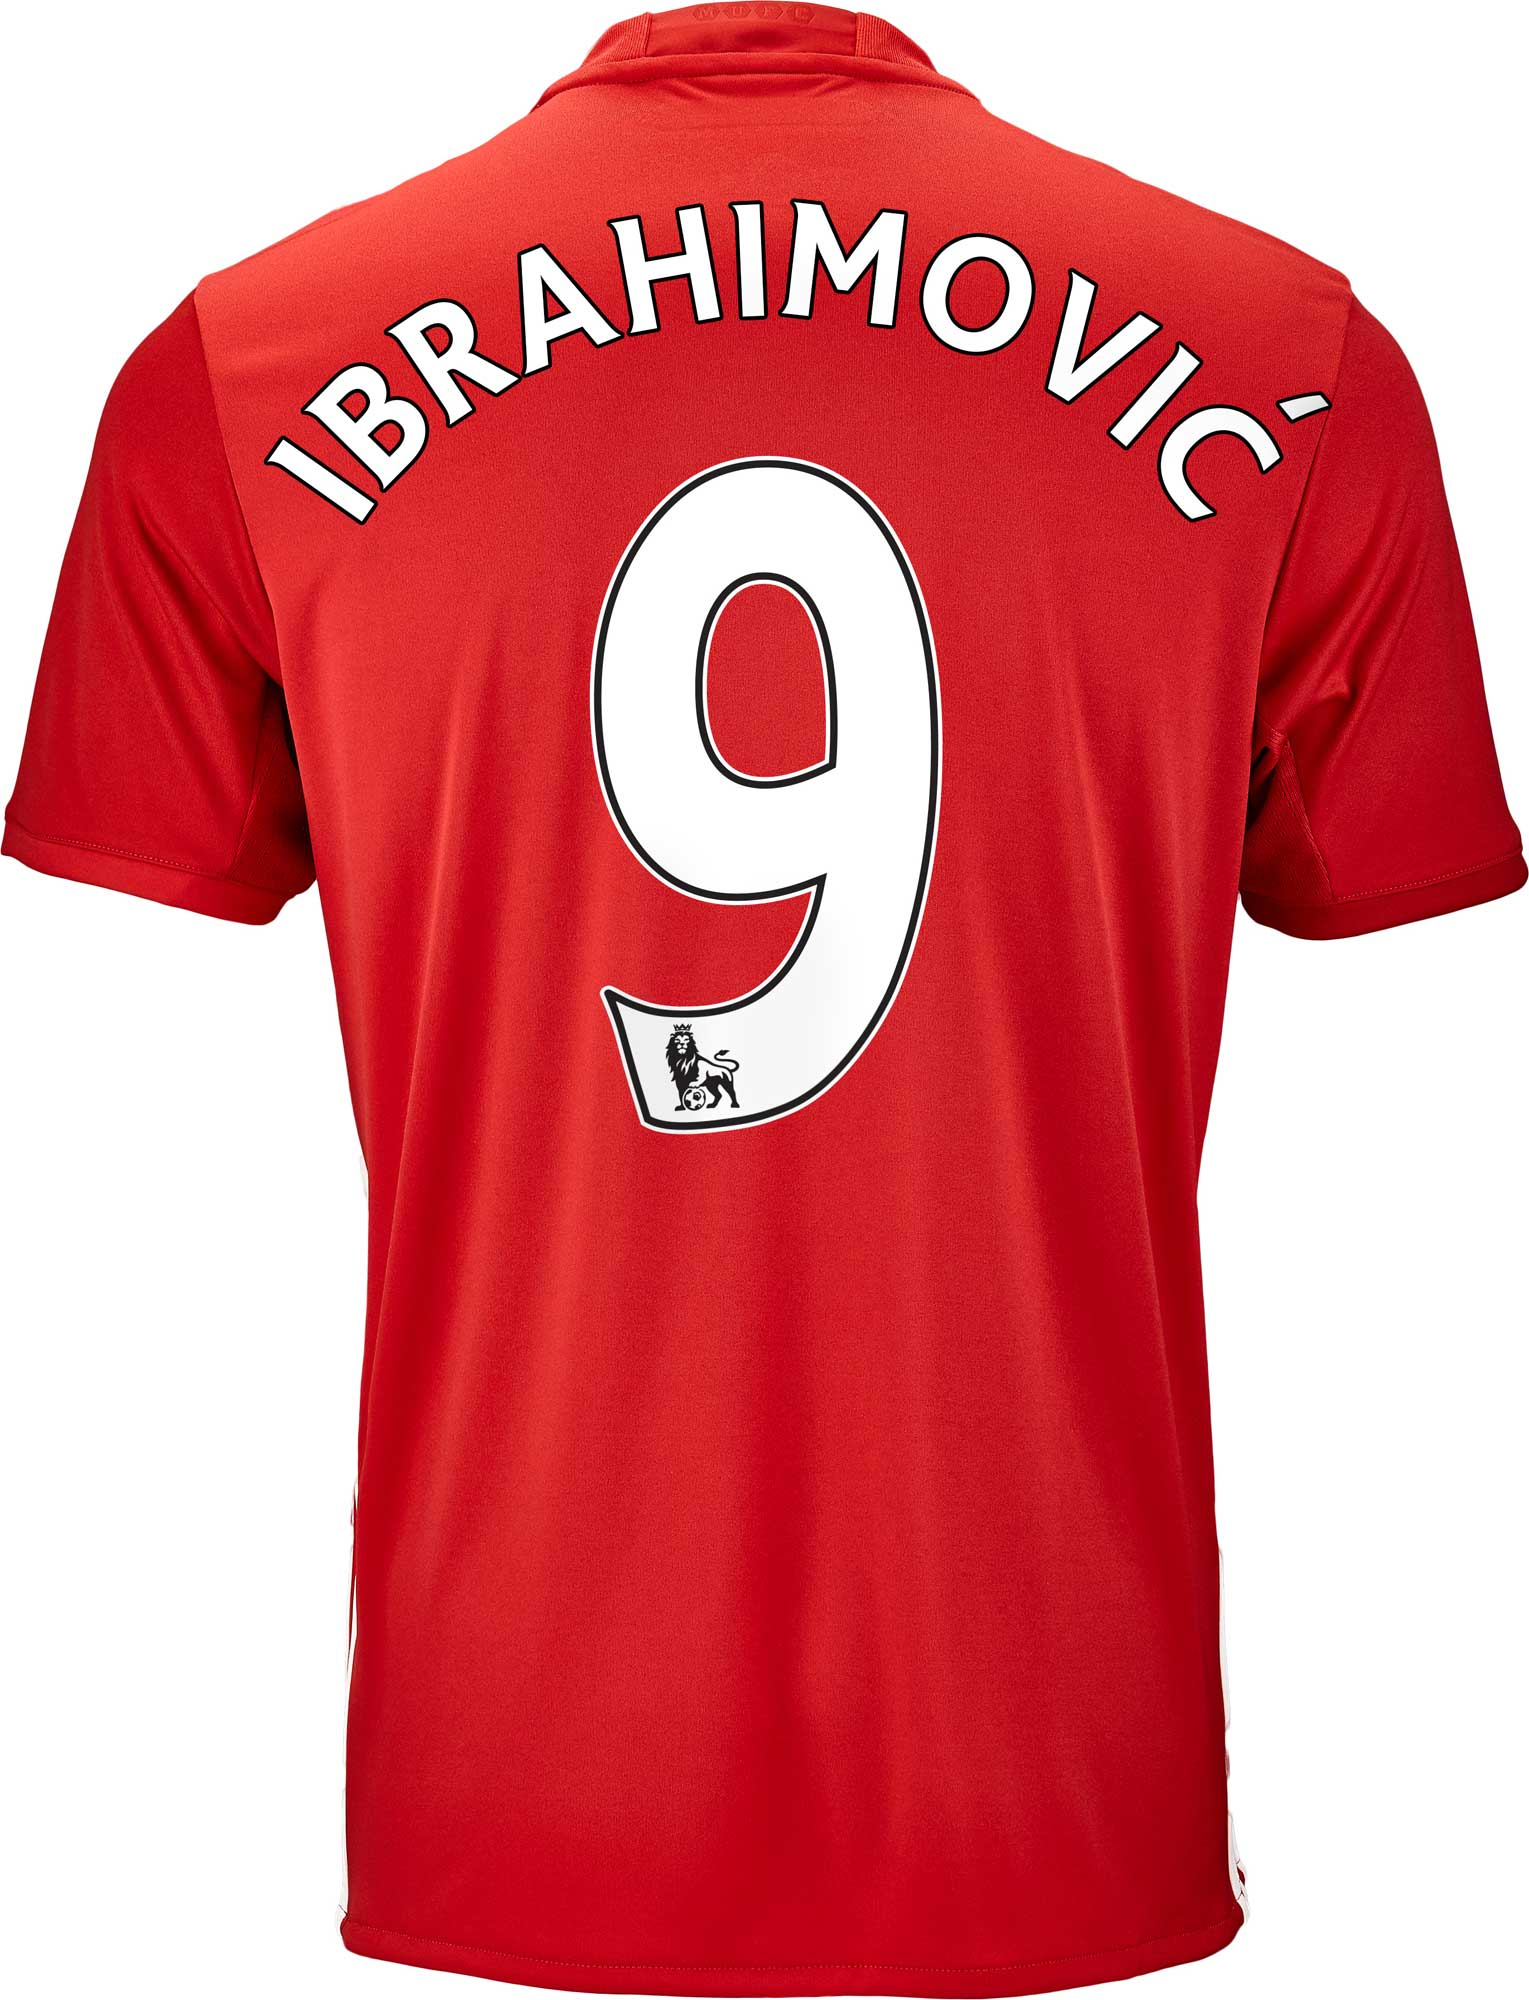 various colors 9deab 23097 Zlatan Manchester United Jersey - 2016-17 adidas Man United ...